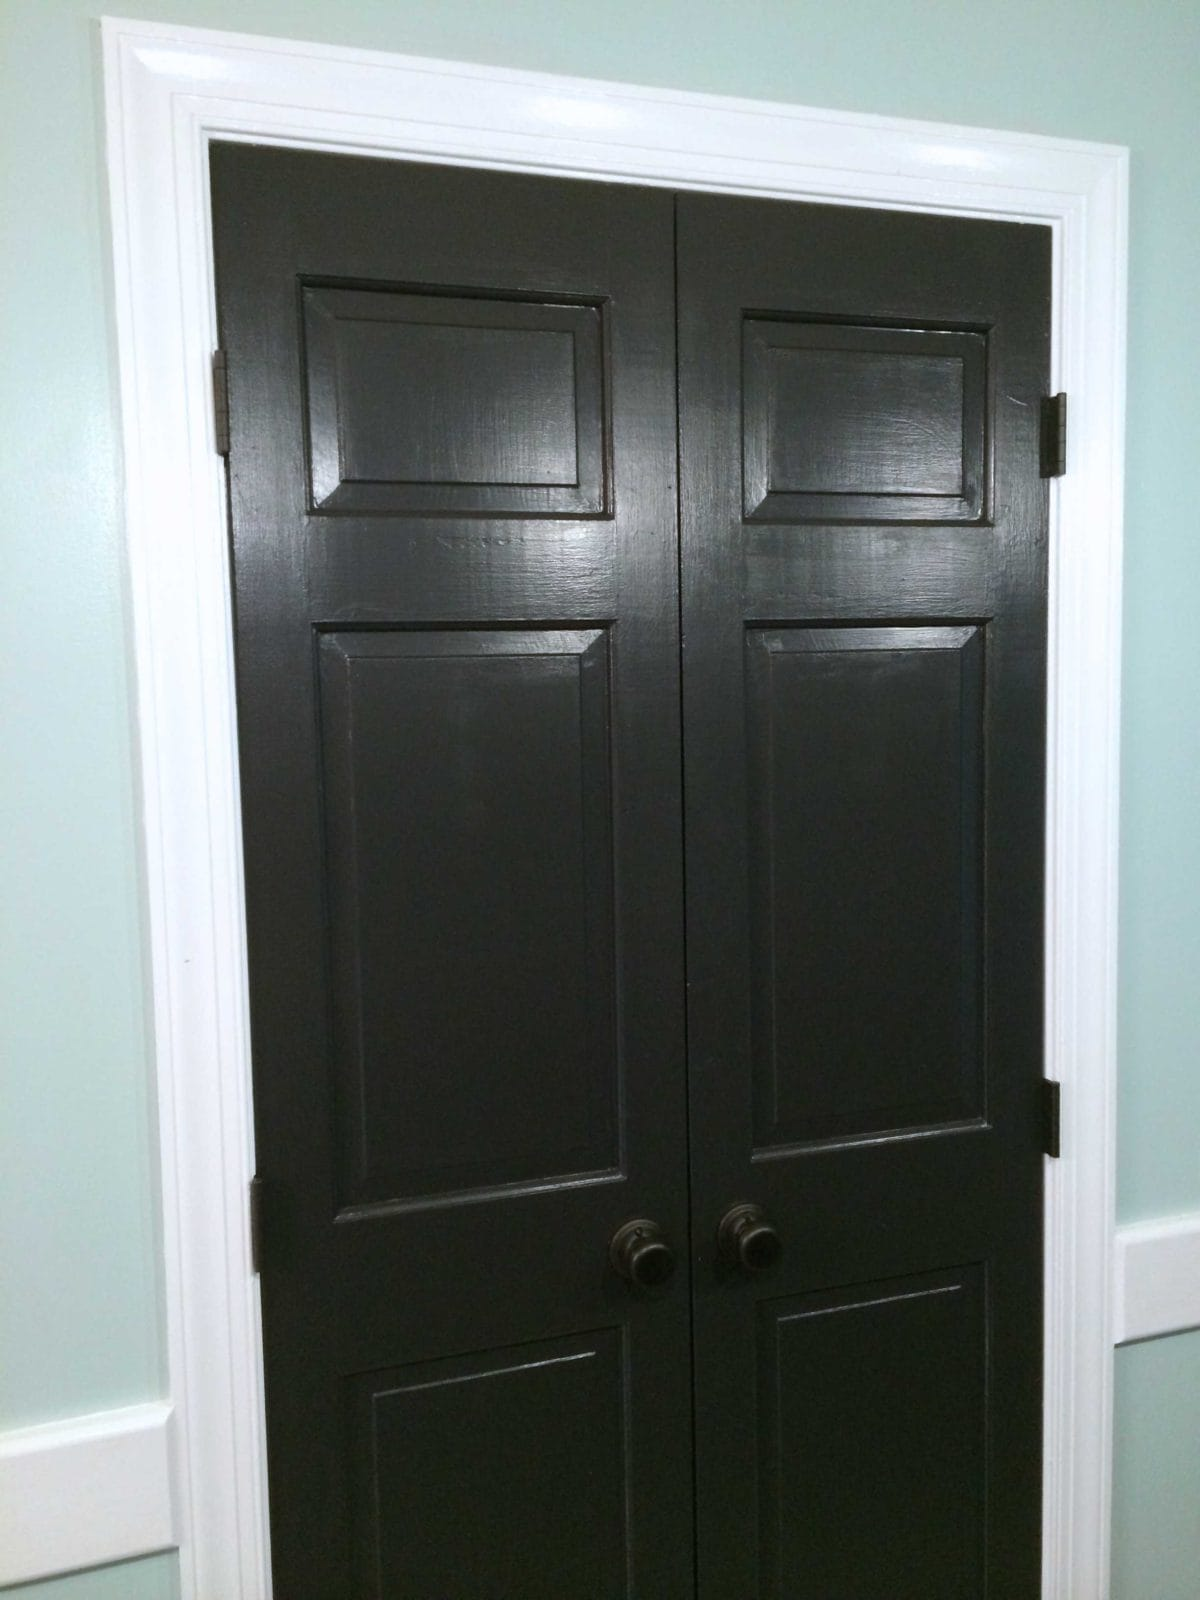 And Here S A Side By So That You Can Get The Full Effect Of Difference Black Doors White Trim Made Quite Transformation From Puke